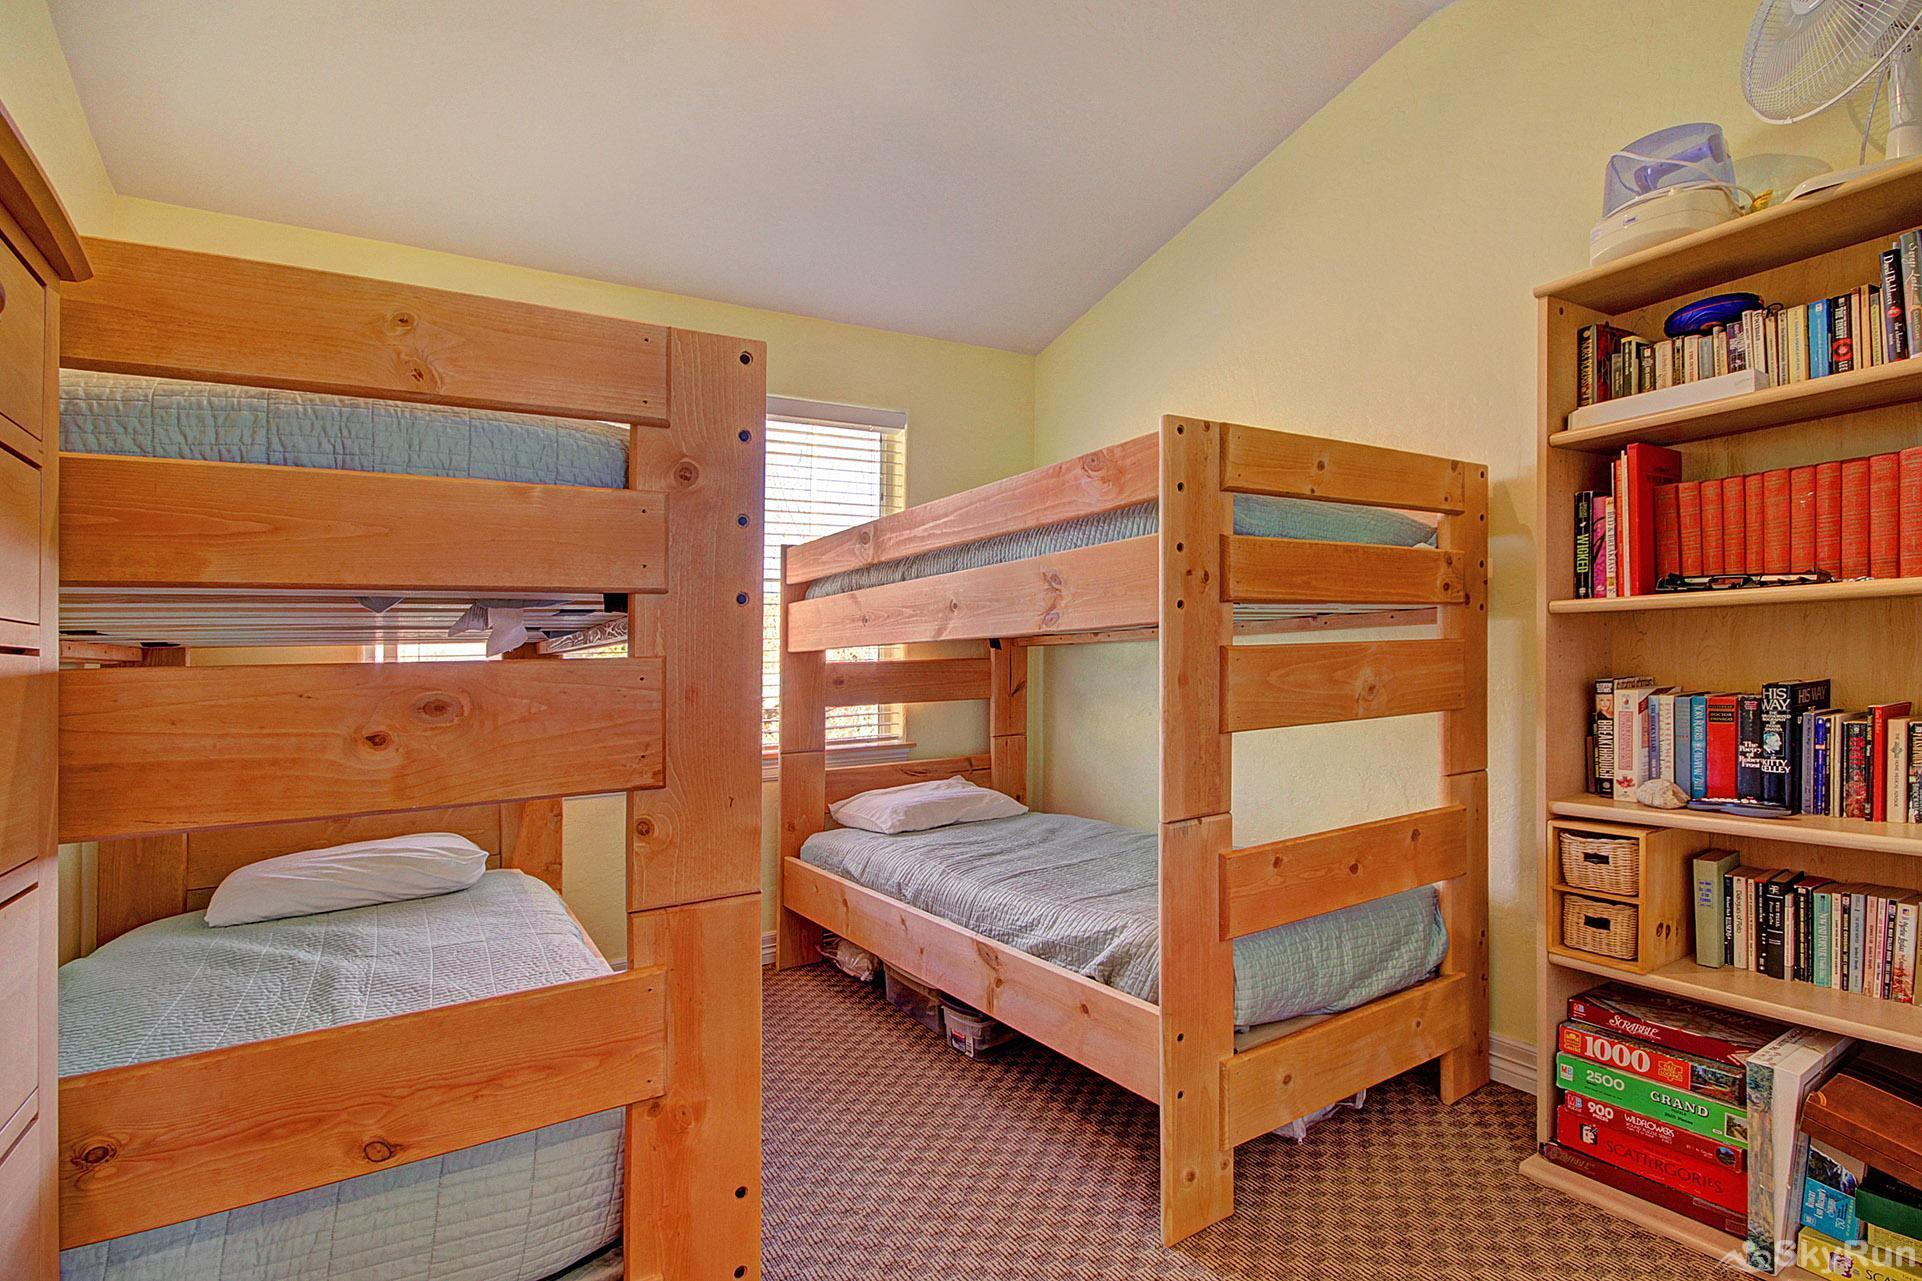 Kingdom Park Retreat Bedroom #2 - Bunk room sleeps 4